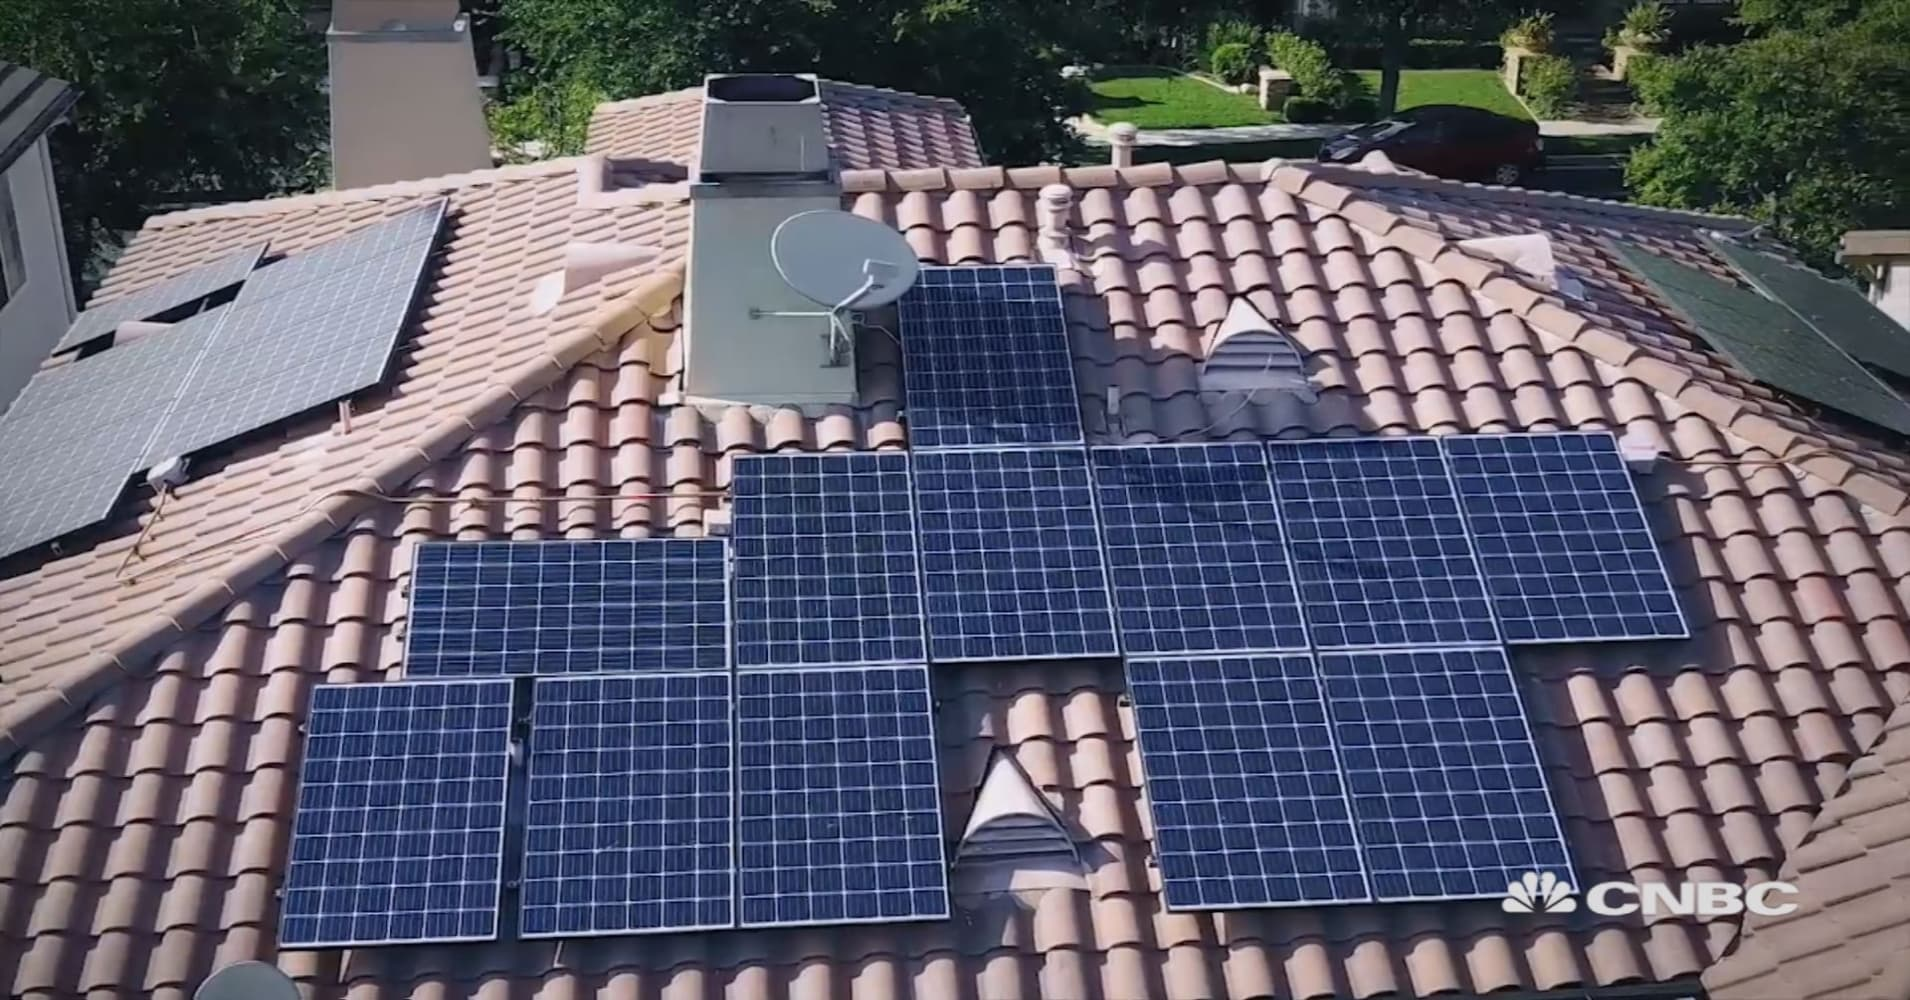 Small-scale solar power is changing lives and disrupting traditional models